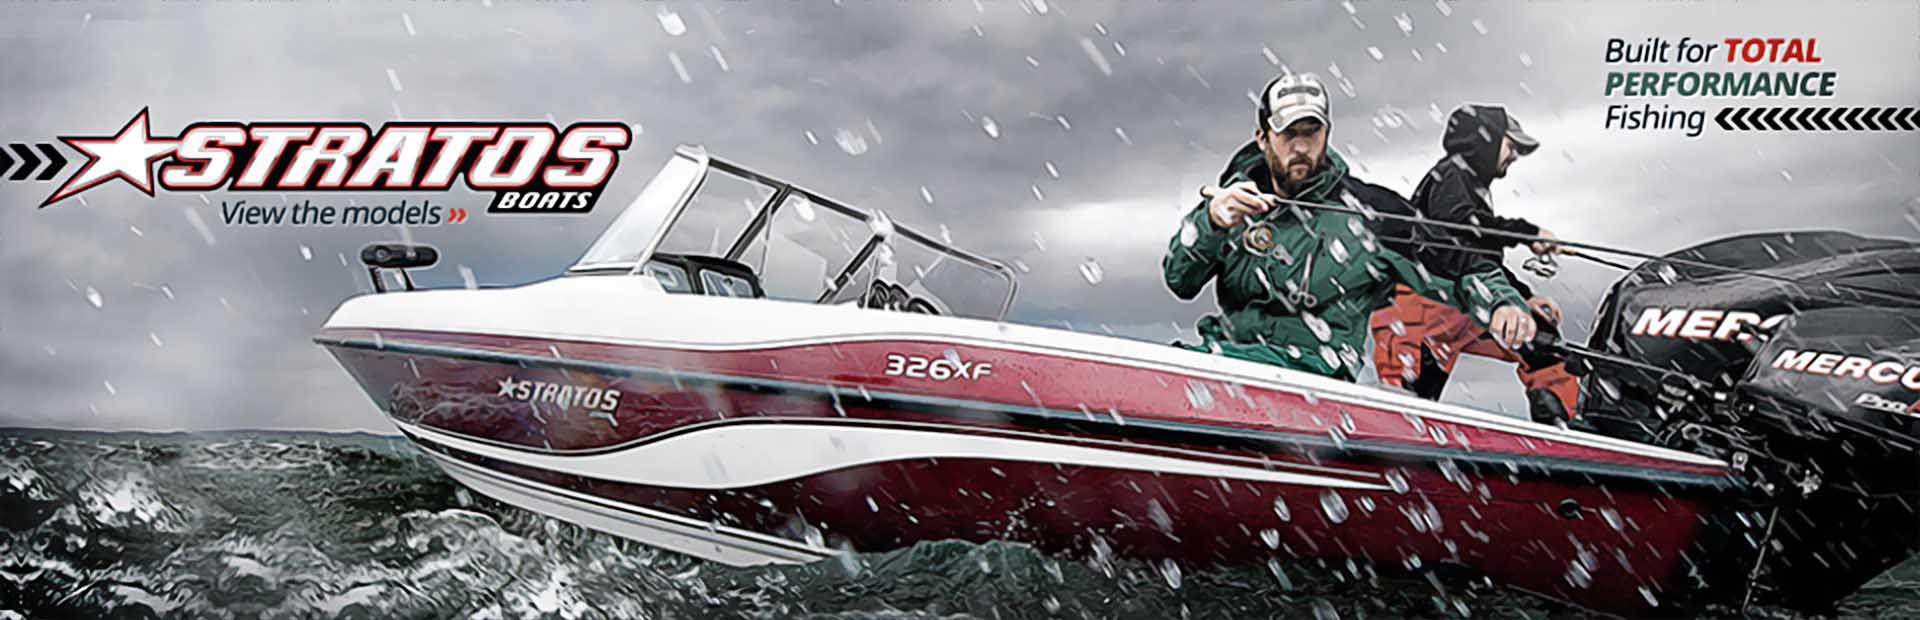 Stratos Boats: Click here to view the models.